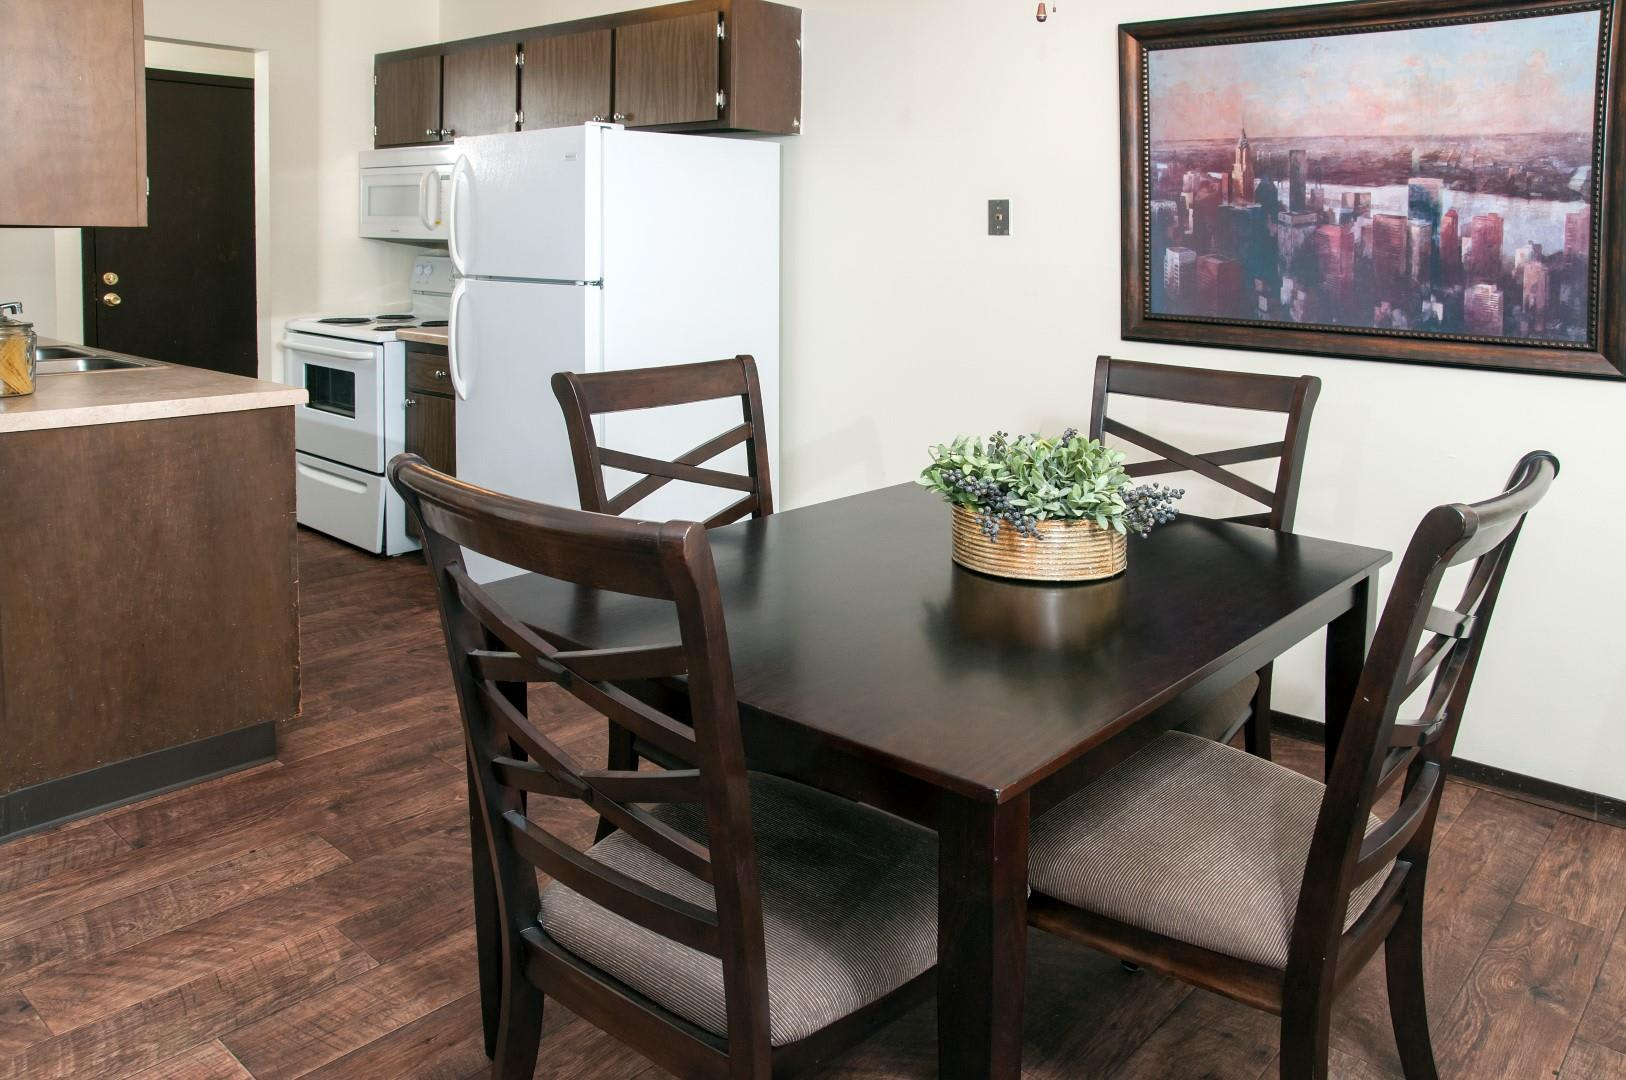 Hardwood Floors in Dining Room and Kitchen of Apartments in Burnsville, MN